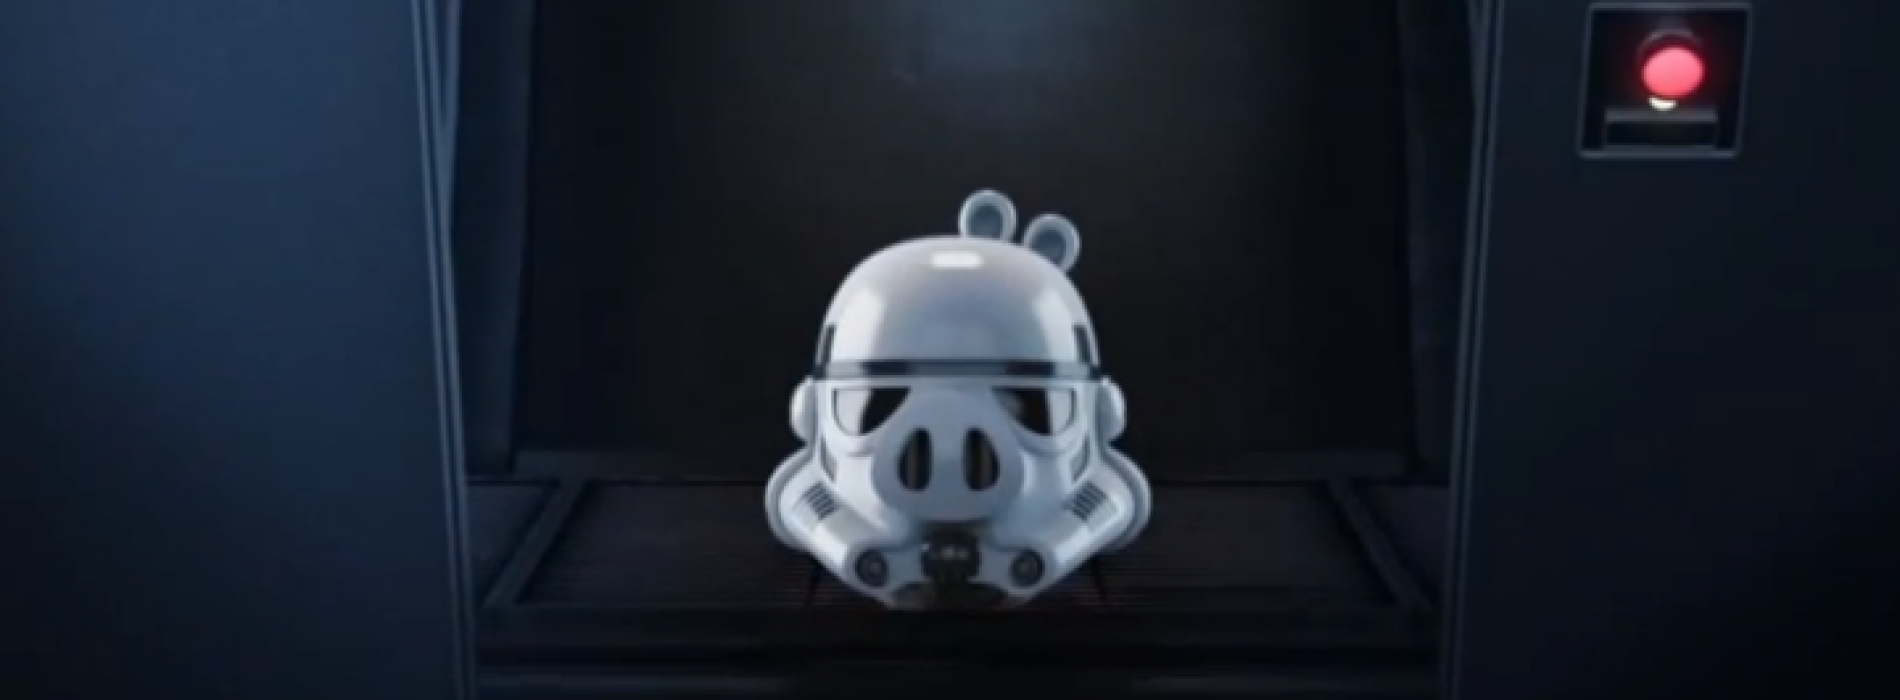 Rovio teases Angry Birds Star Wars with another video